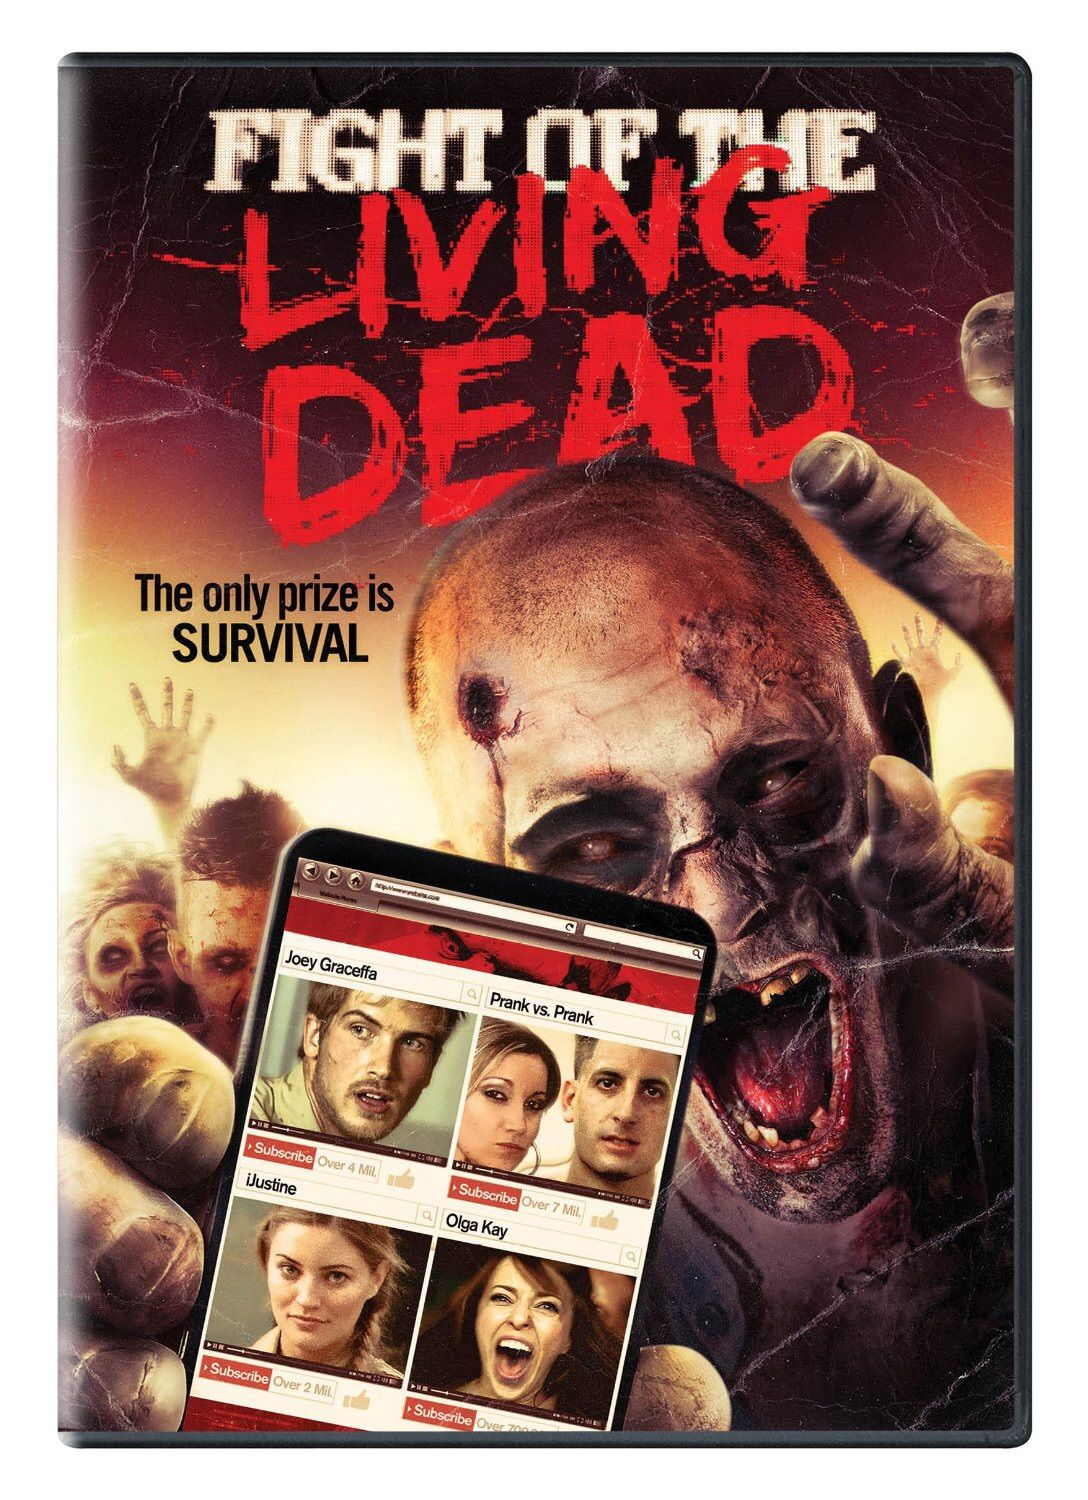 Pin by Zombob on Zombie Movies/Shorts Newest horror